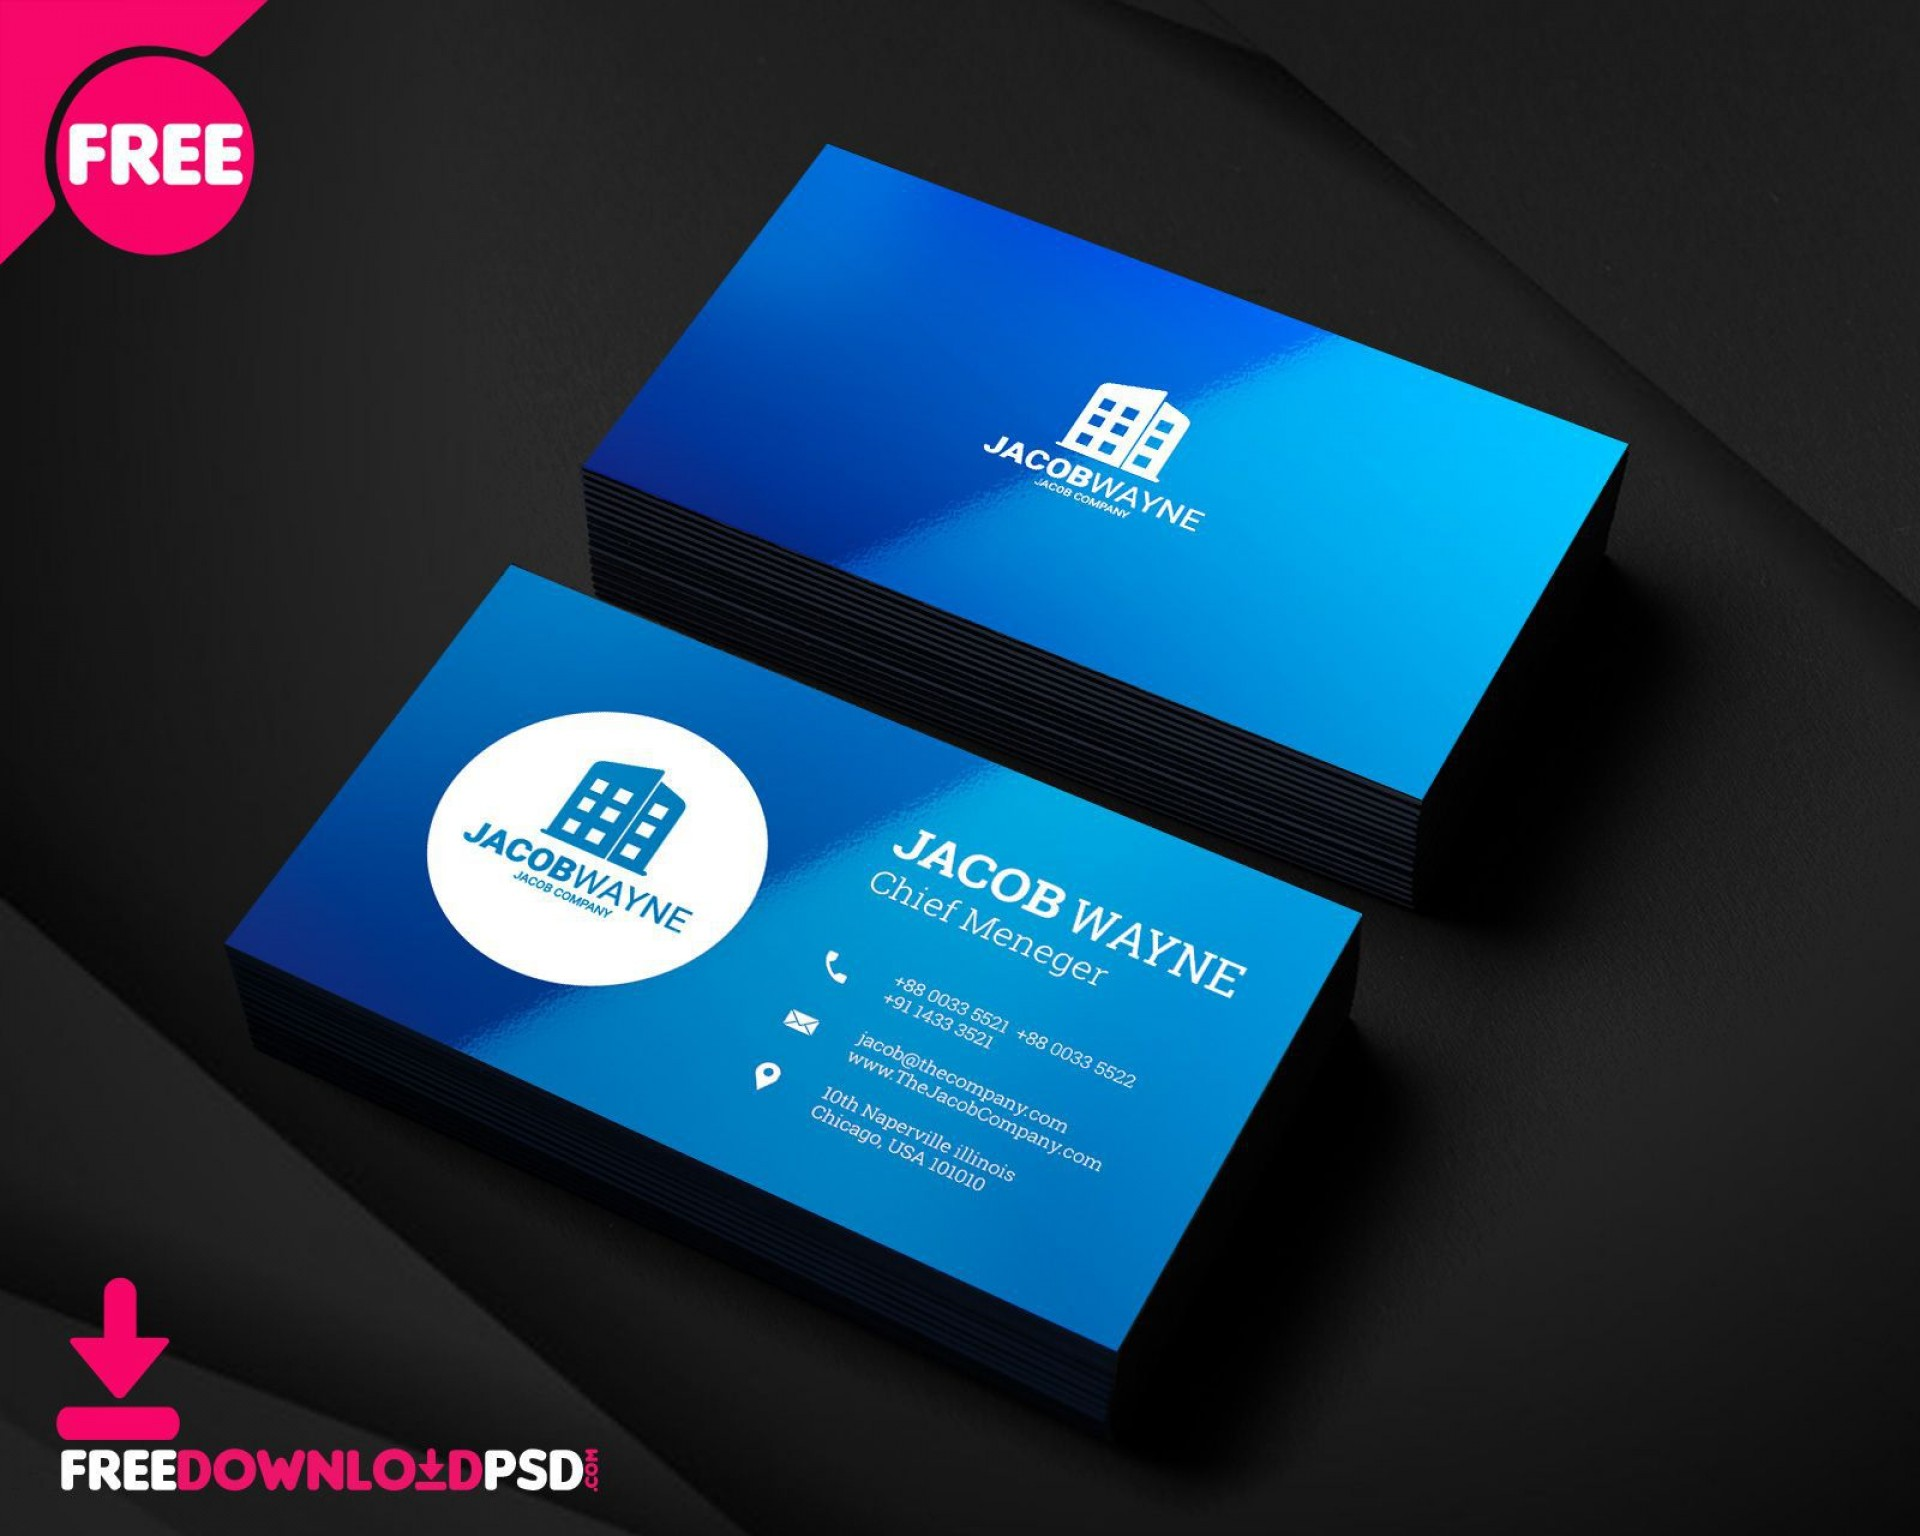 004 Rare Blank Busines Card Template Psd Free Inspiration  Photoshop Download1920